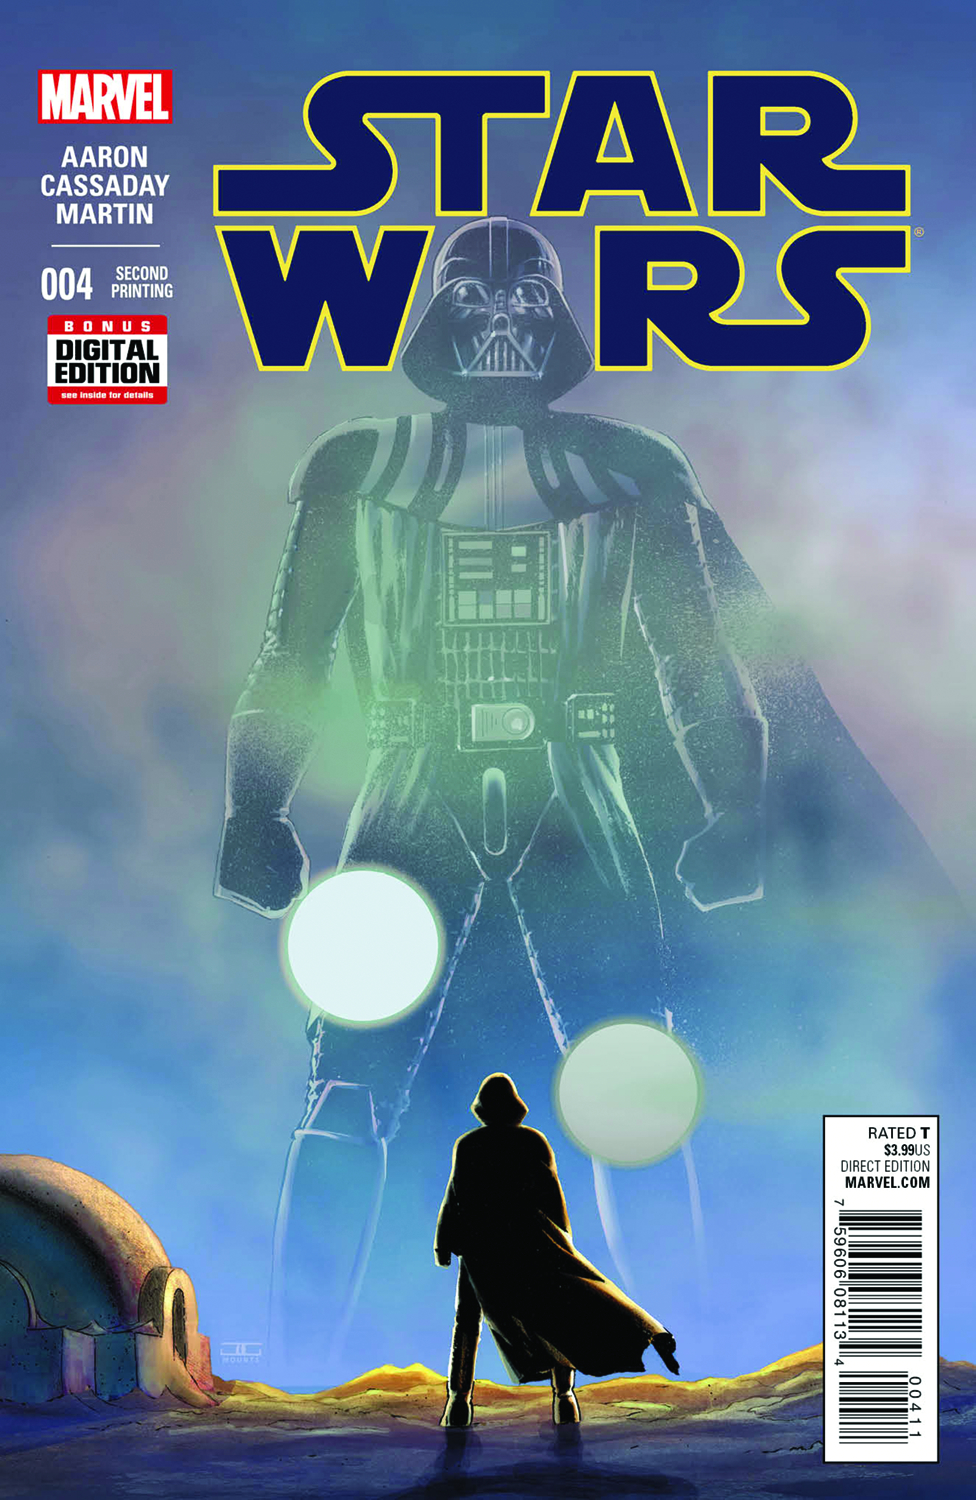 STAR WARS #4 CASSADAY 2ND PTG VAR (PP #1184)